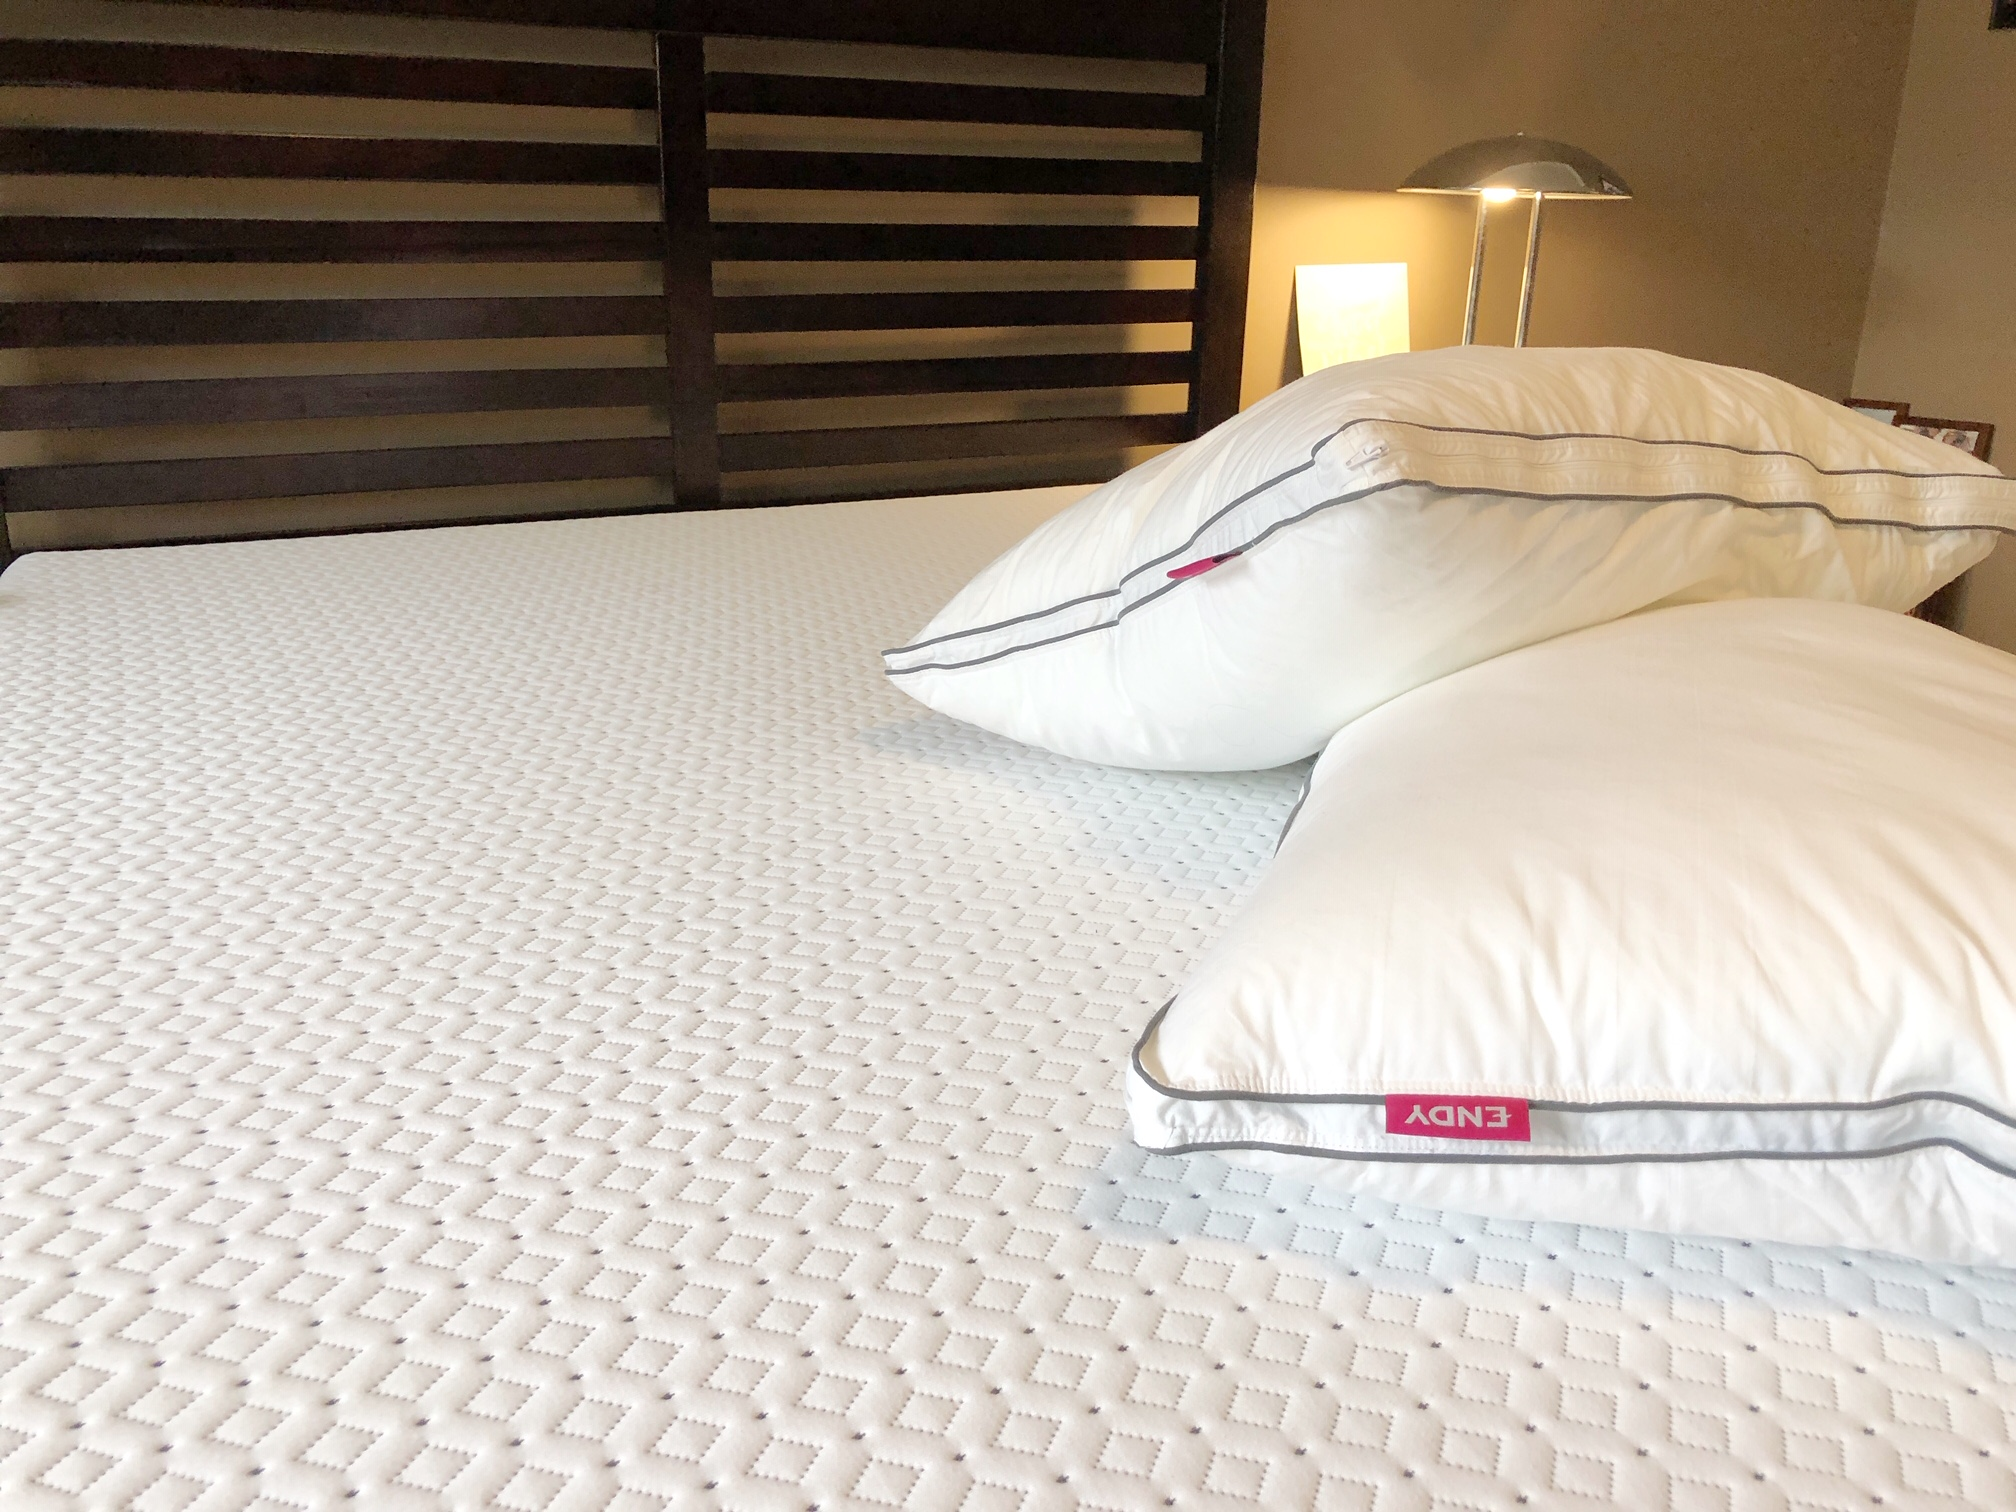 The Endy Mattress review